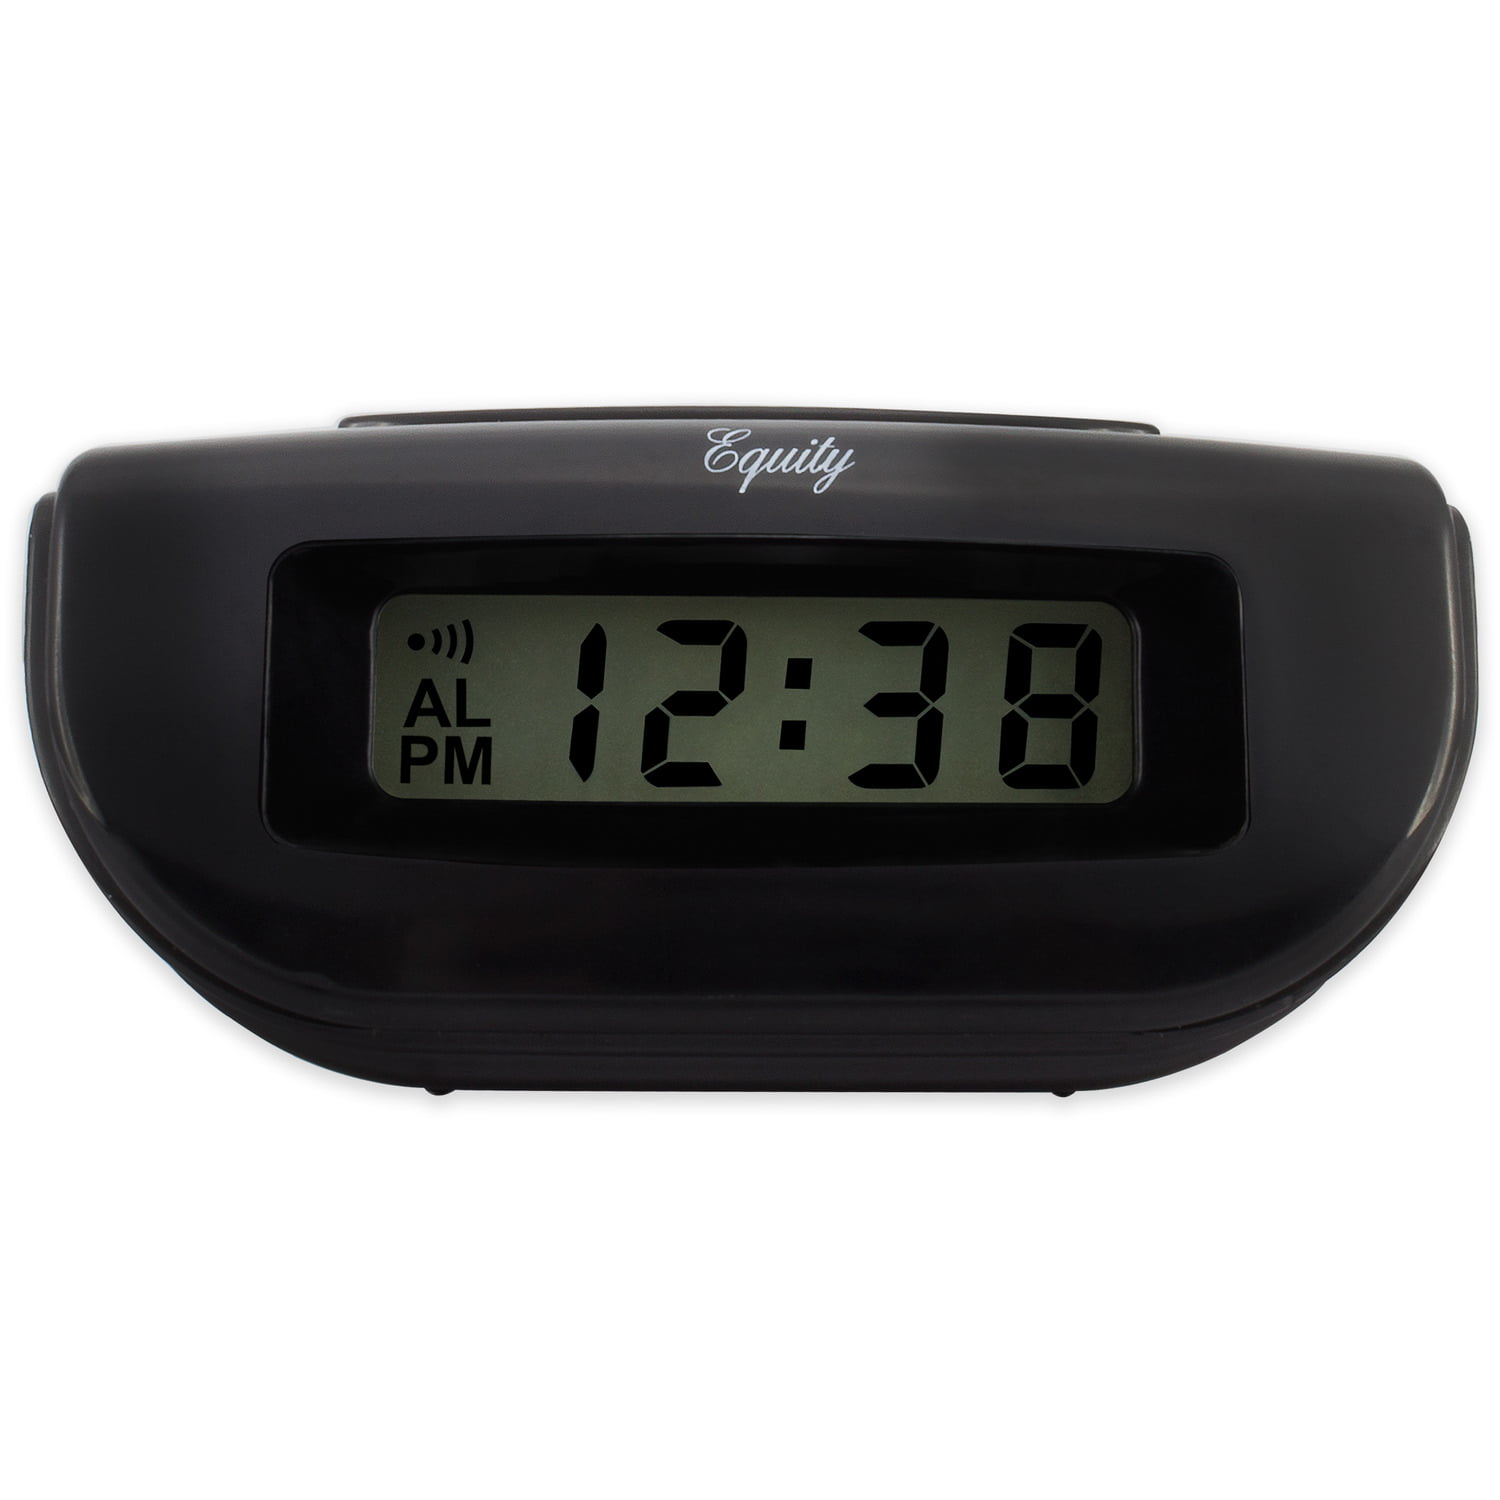 Equity by La Crosse 31003 Small Digital Alarm Clock by La Crosse Technology Ltd.